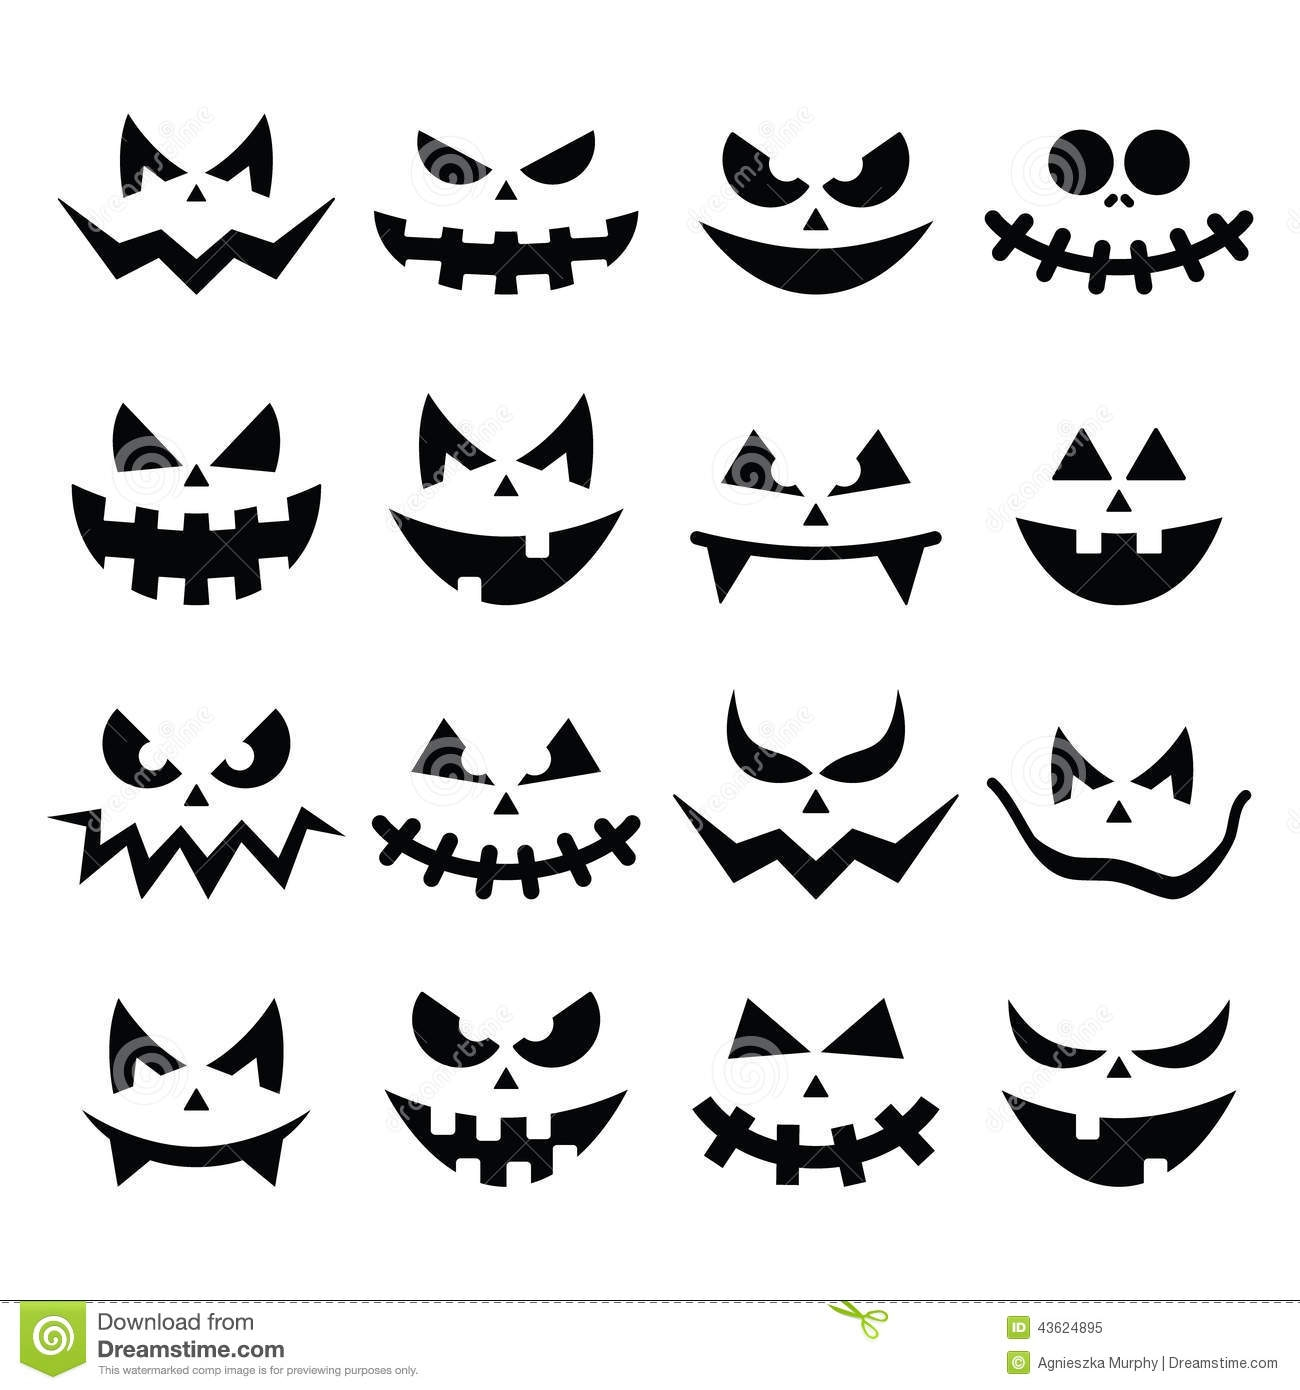 evil face pumpkin template - pumpkin face clipart black and white clipground